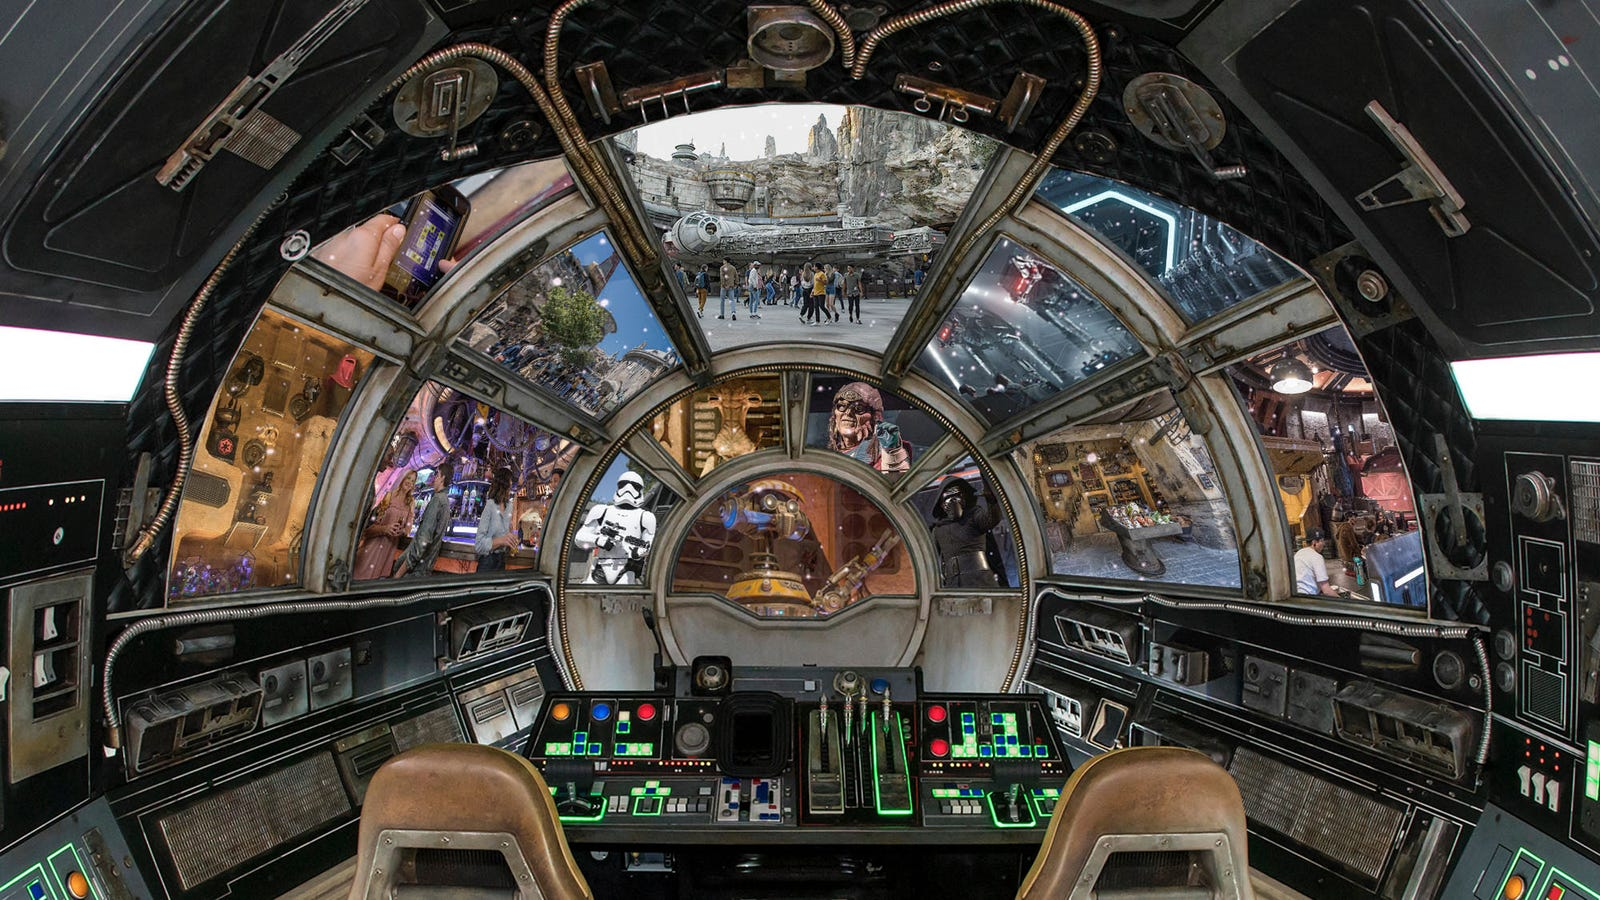 In true Star Wars fashion, the greatest thrills of Galaxy's Edge are the humblest in appearance